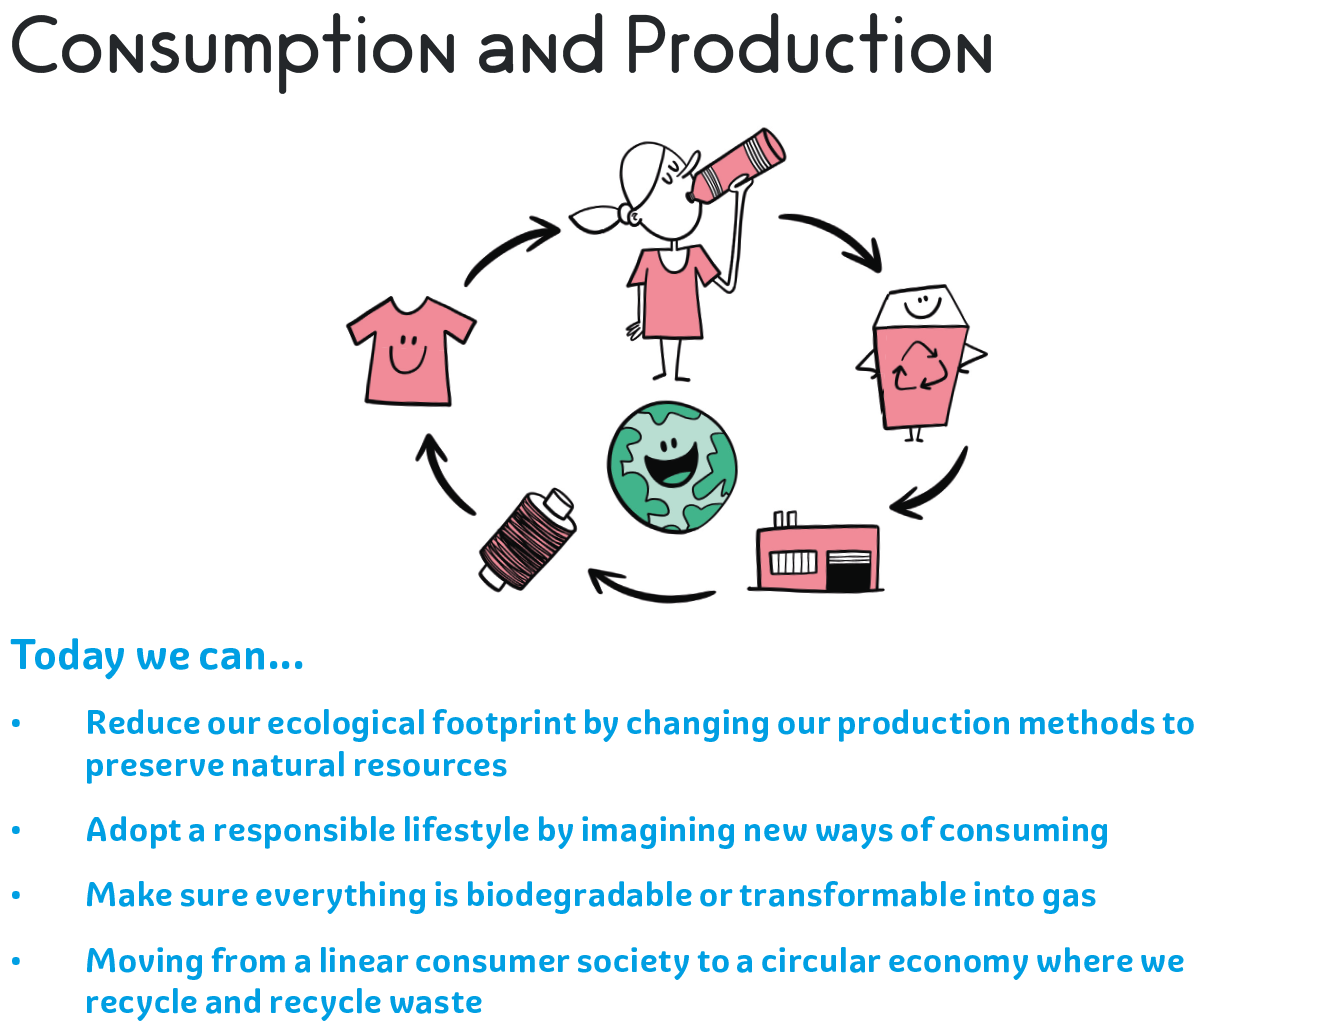 Consumption and production